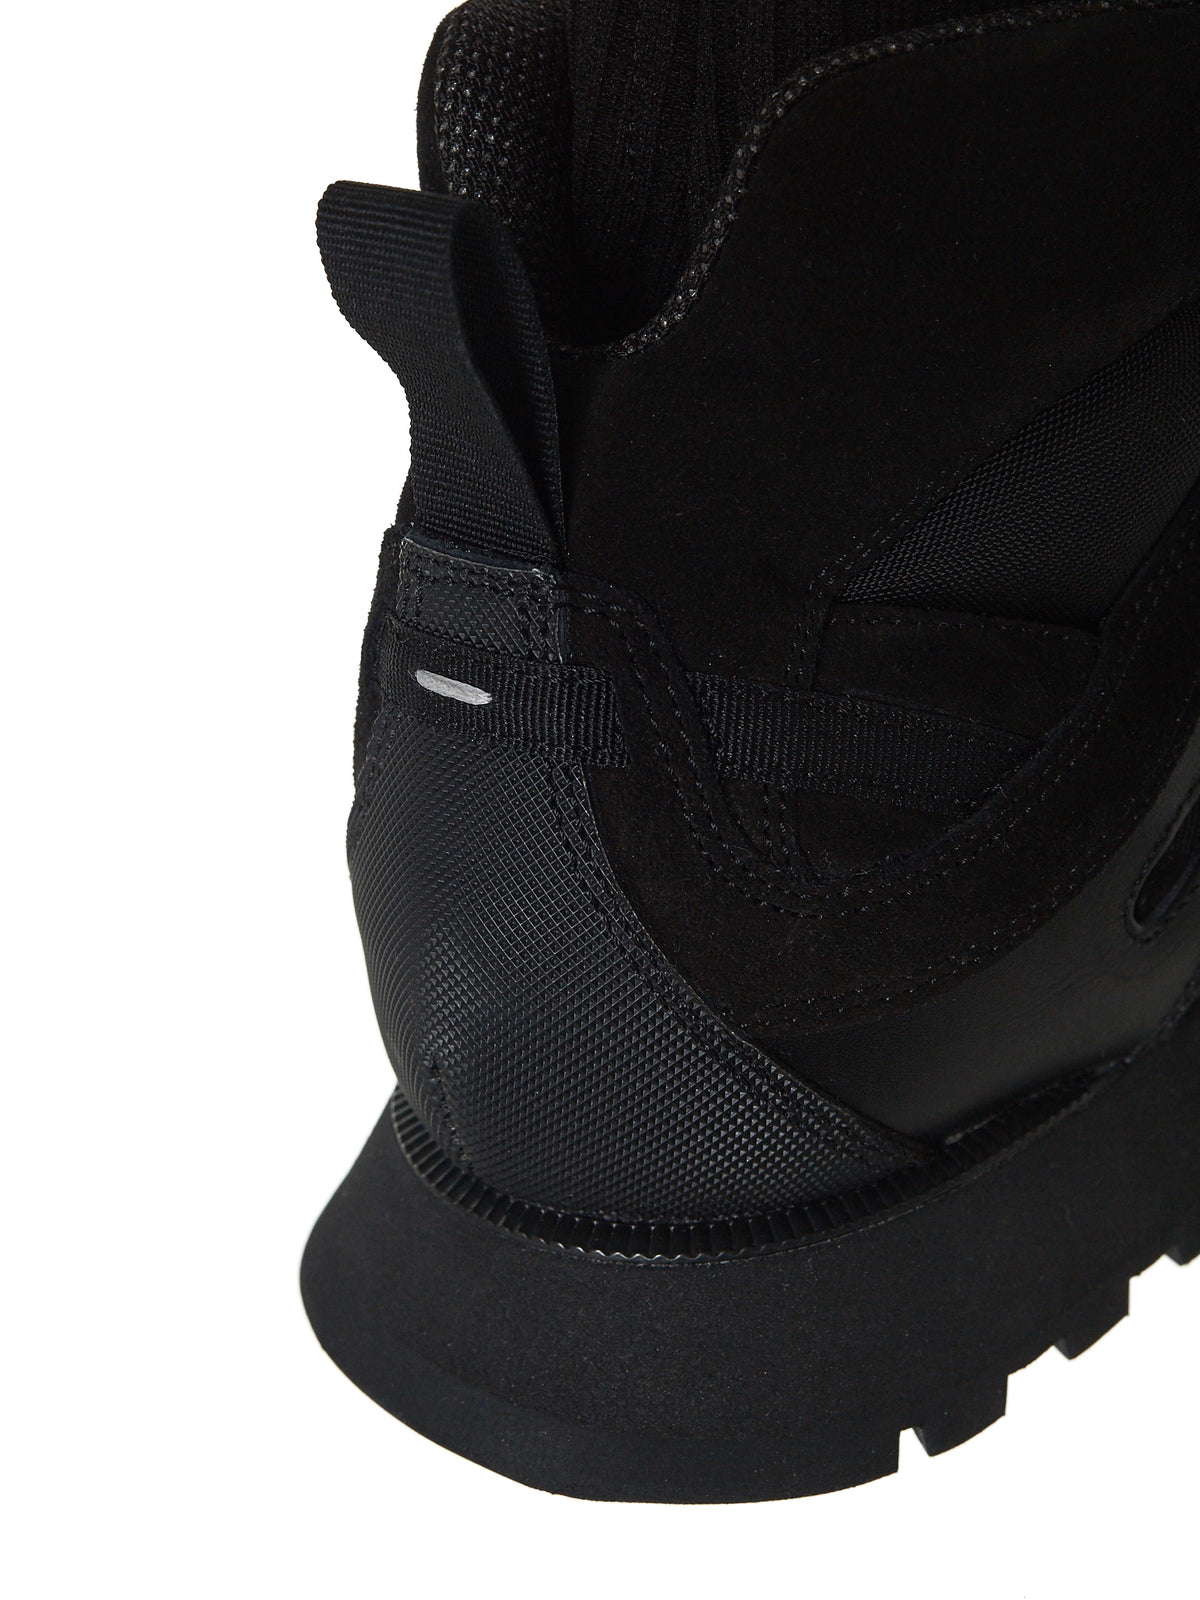 'Security' Sock Neck Runner (S37WS0456-T8017)